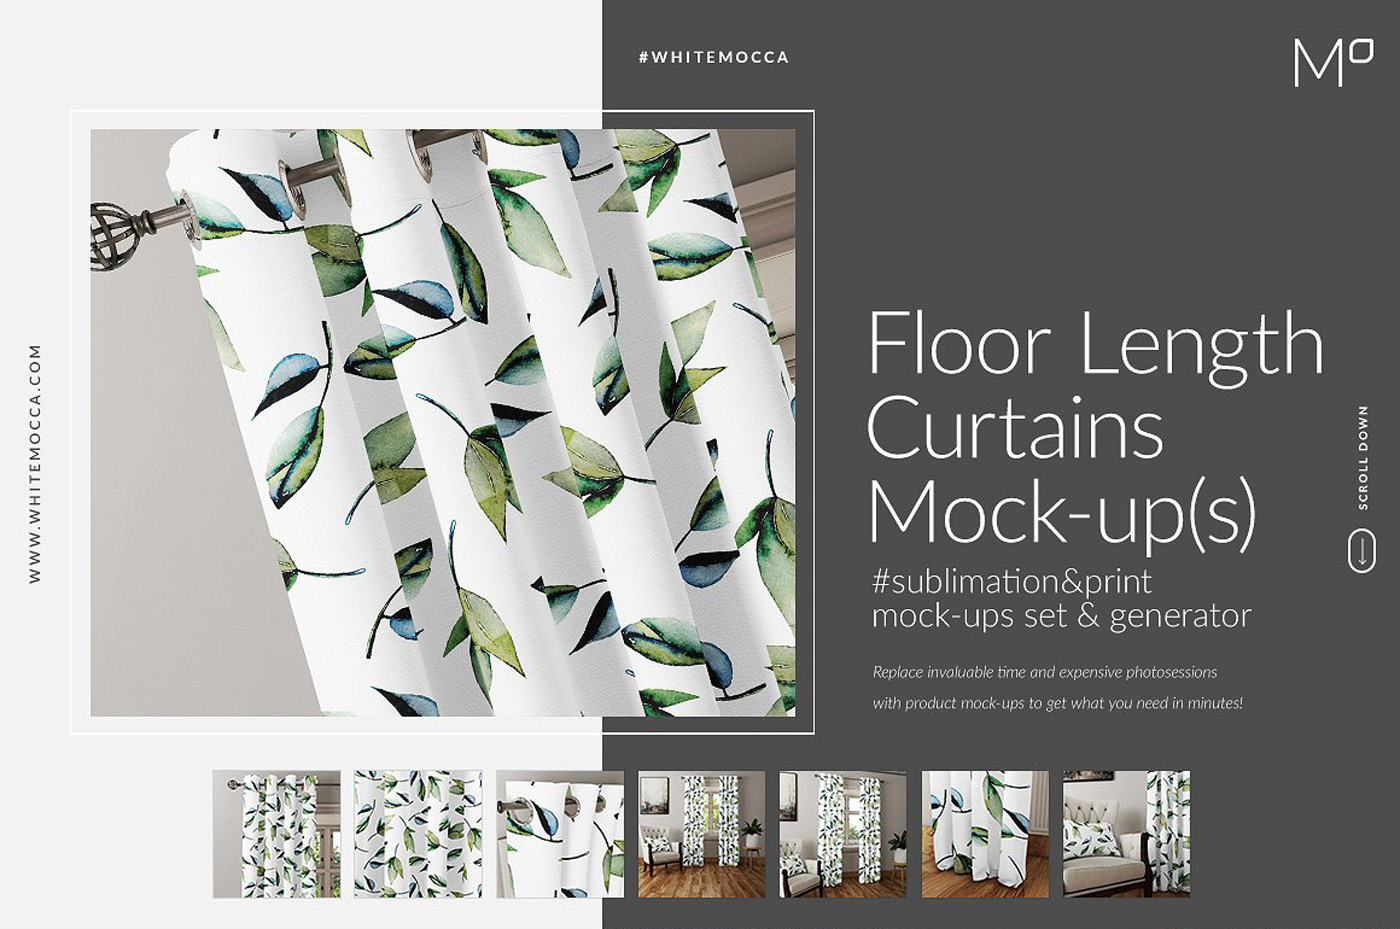 Floor Length Curtains Mockups